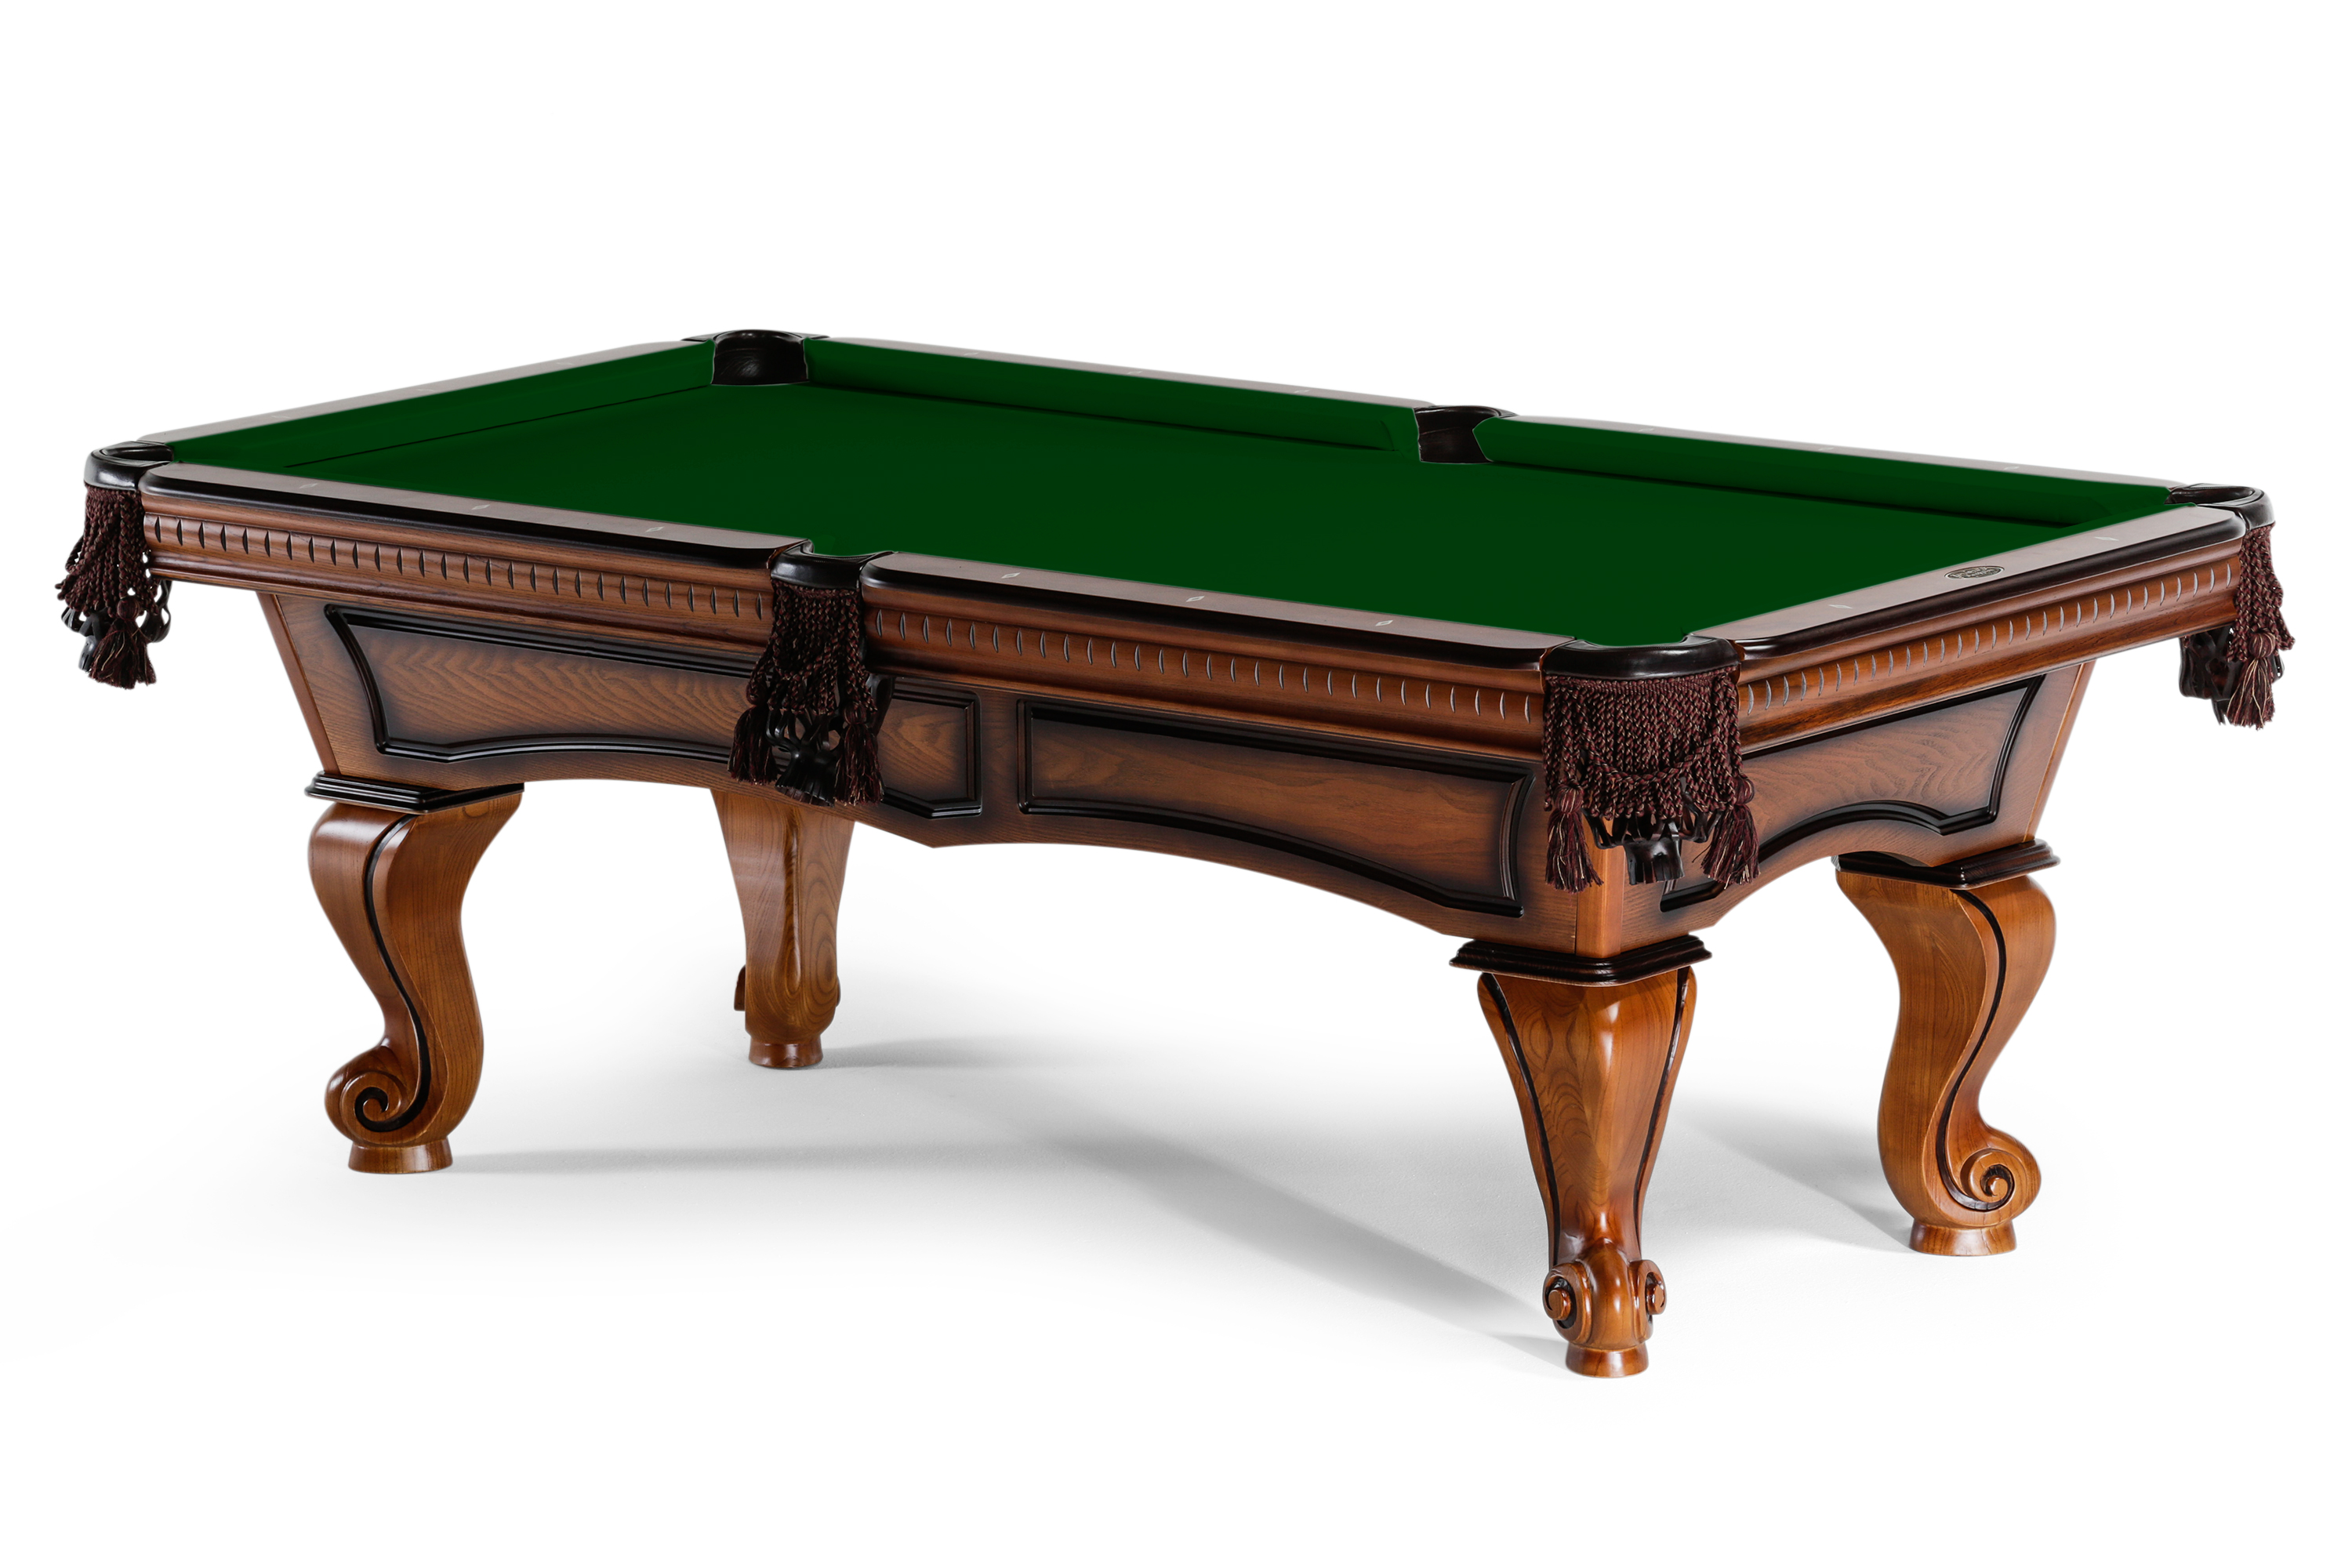 Spencer Marston Tuscany Pool Table Pooltablesdirectcom - Slate core pool table